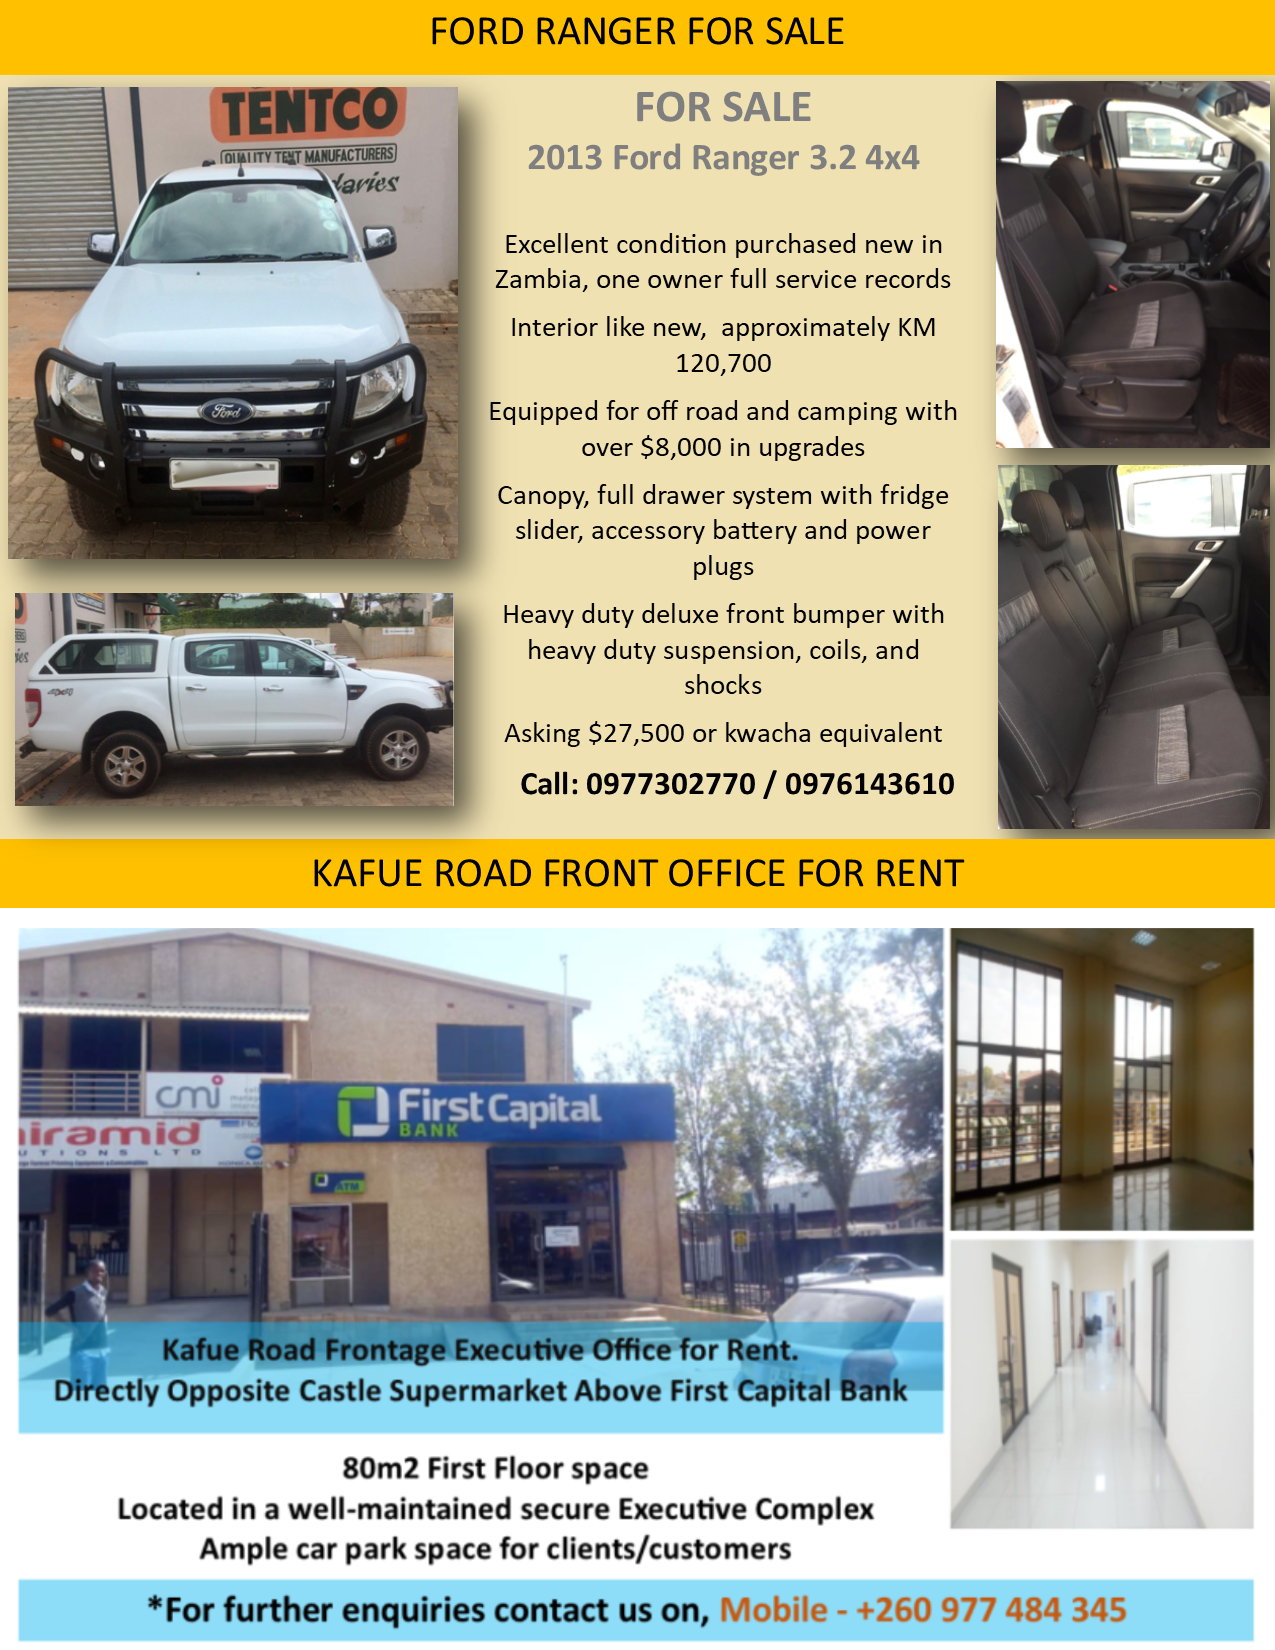 21 08 2019 - FORD RANGER FOR SALE / KAFUE ROAD FRONT OFFICE